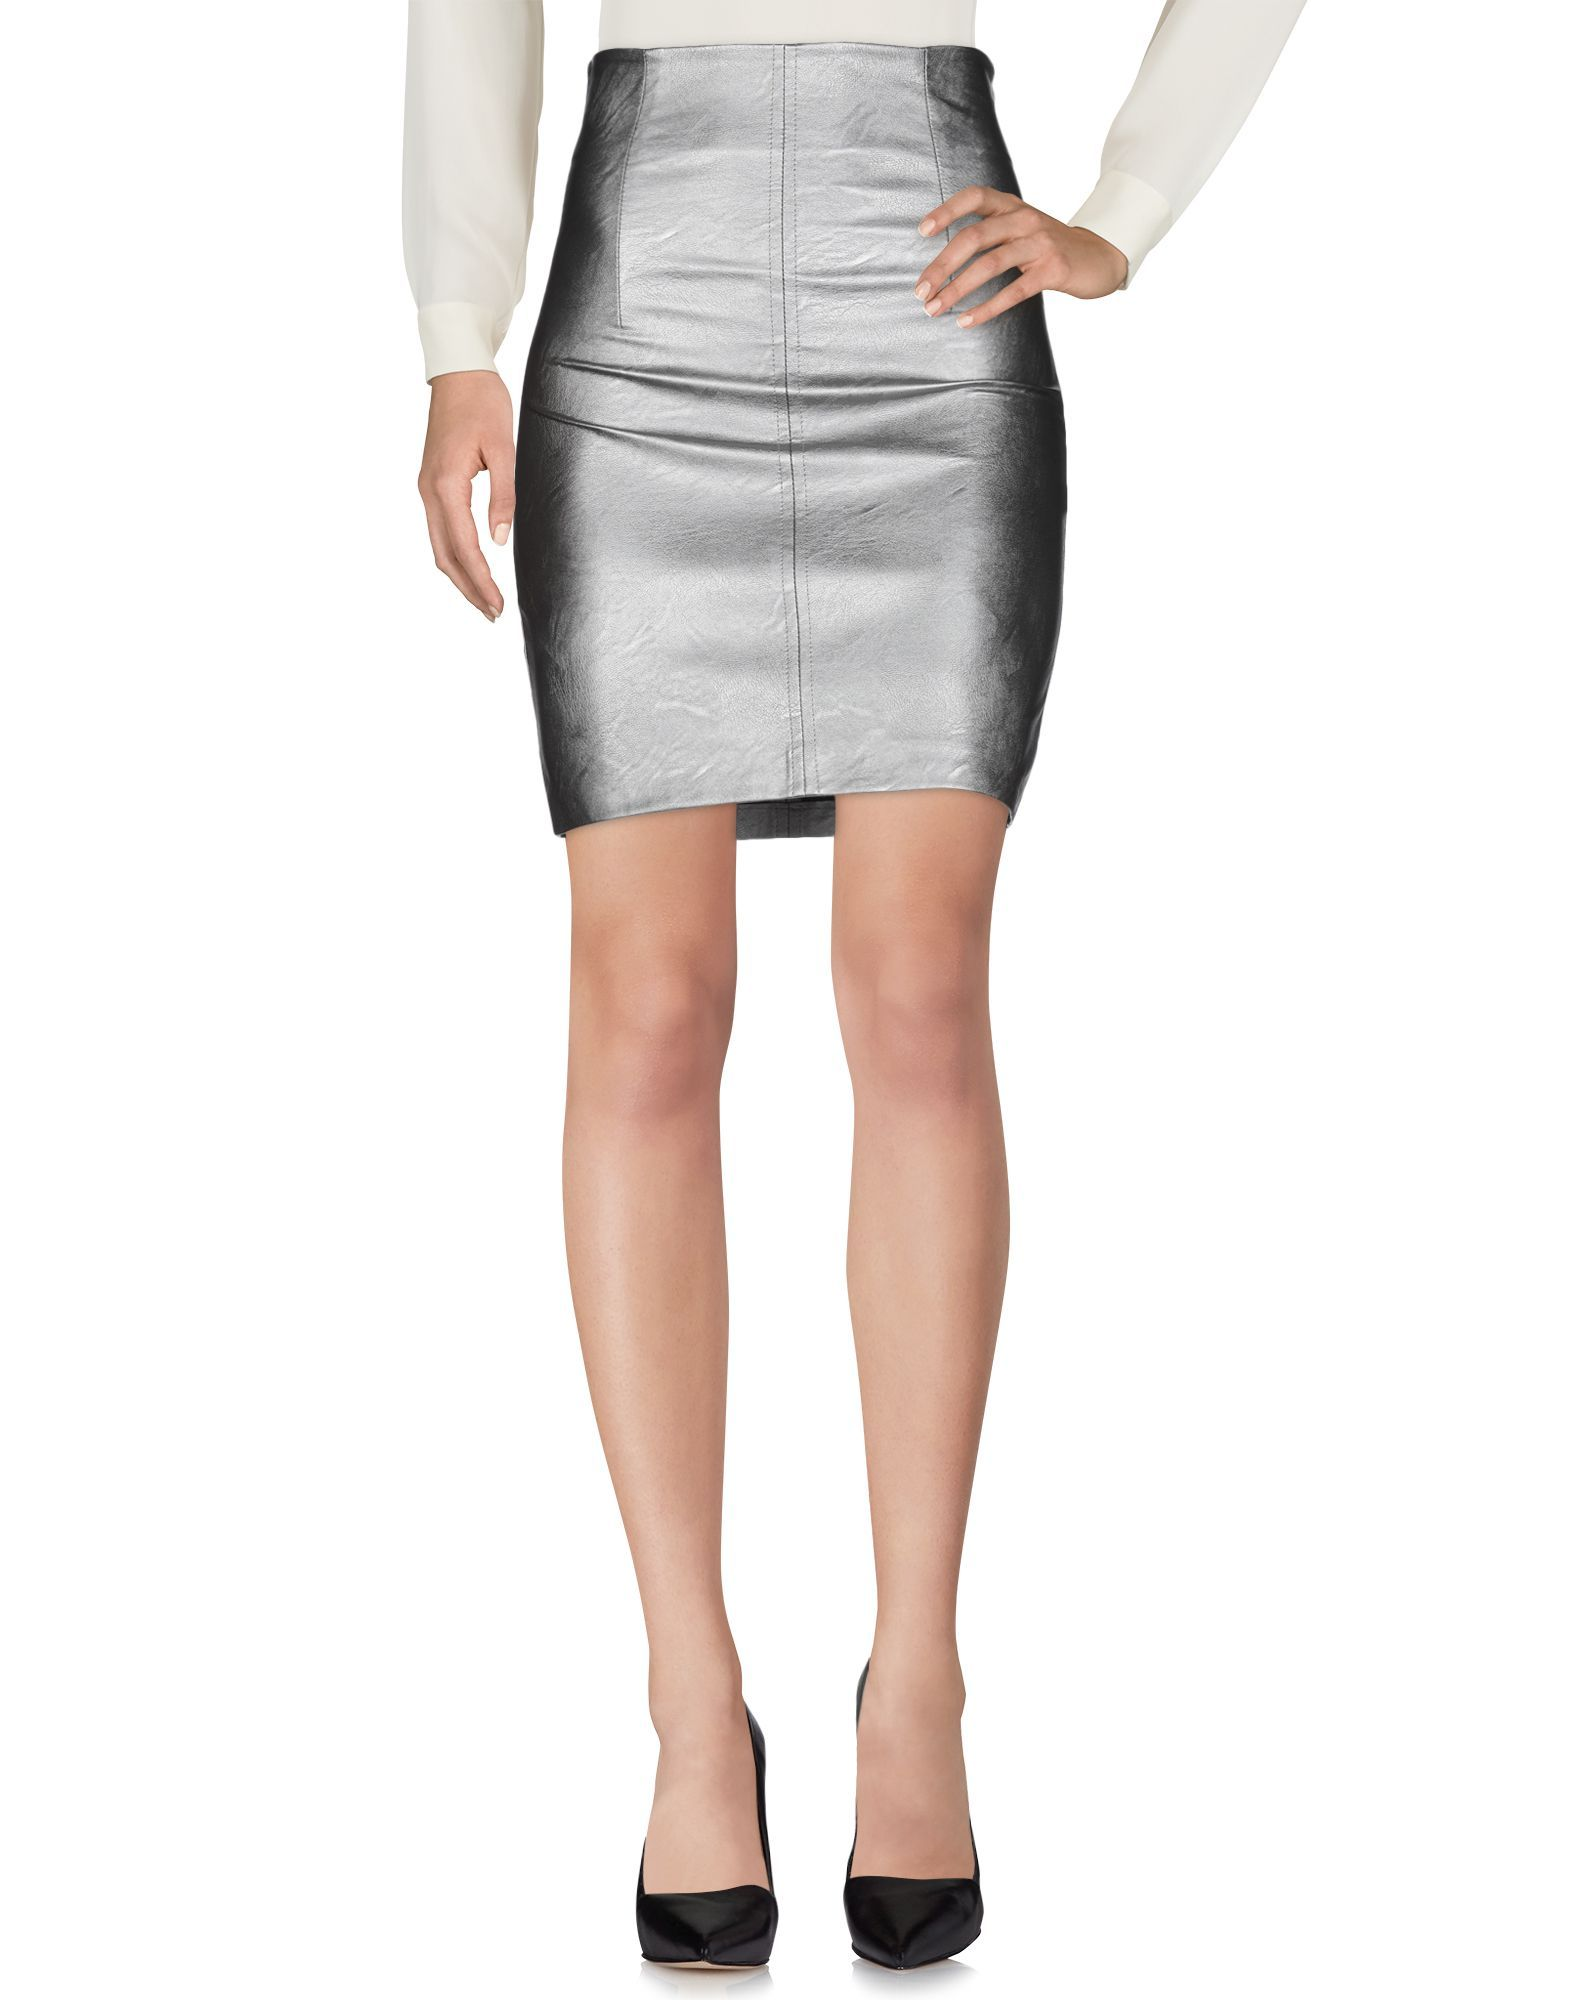 Kaos Jeans Grey Faux Leather Short Skirt